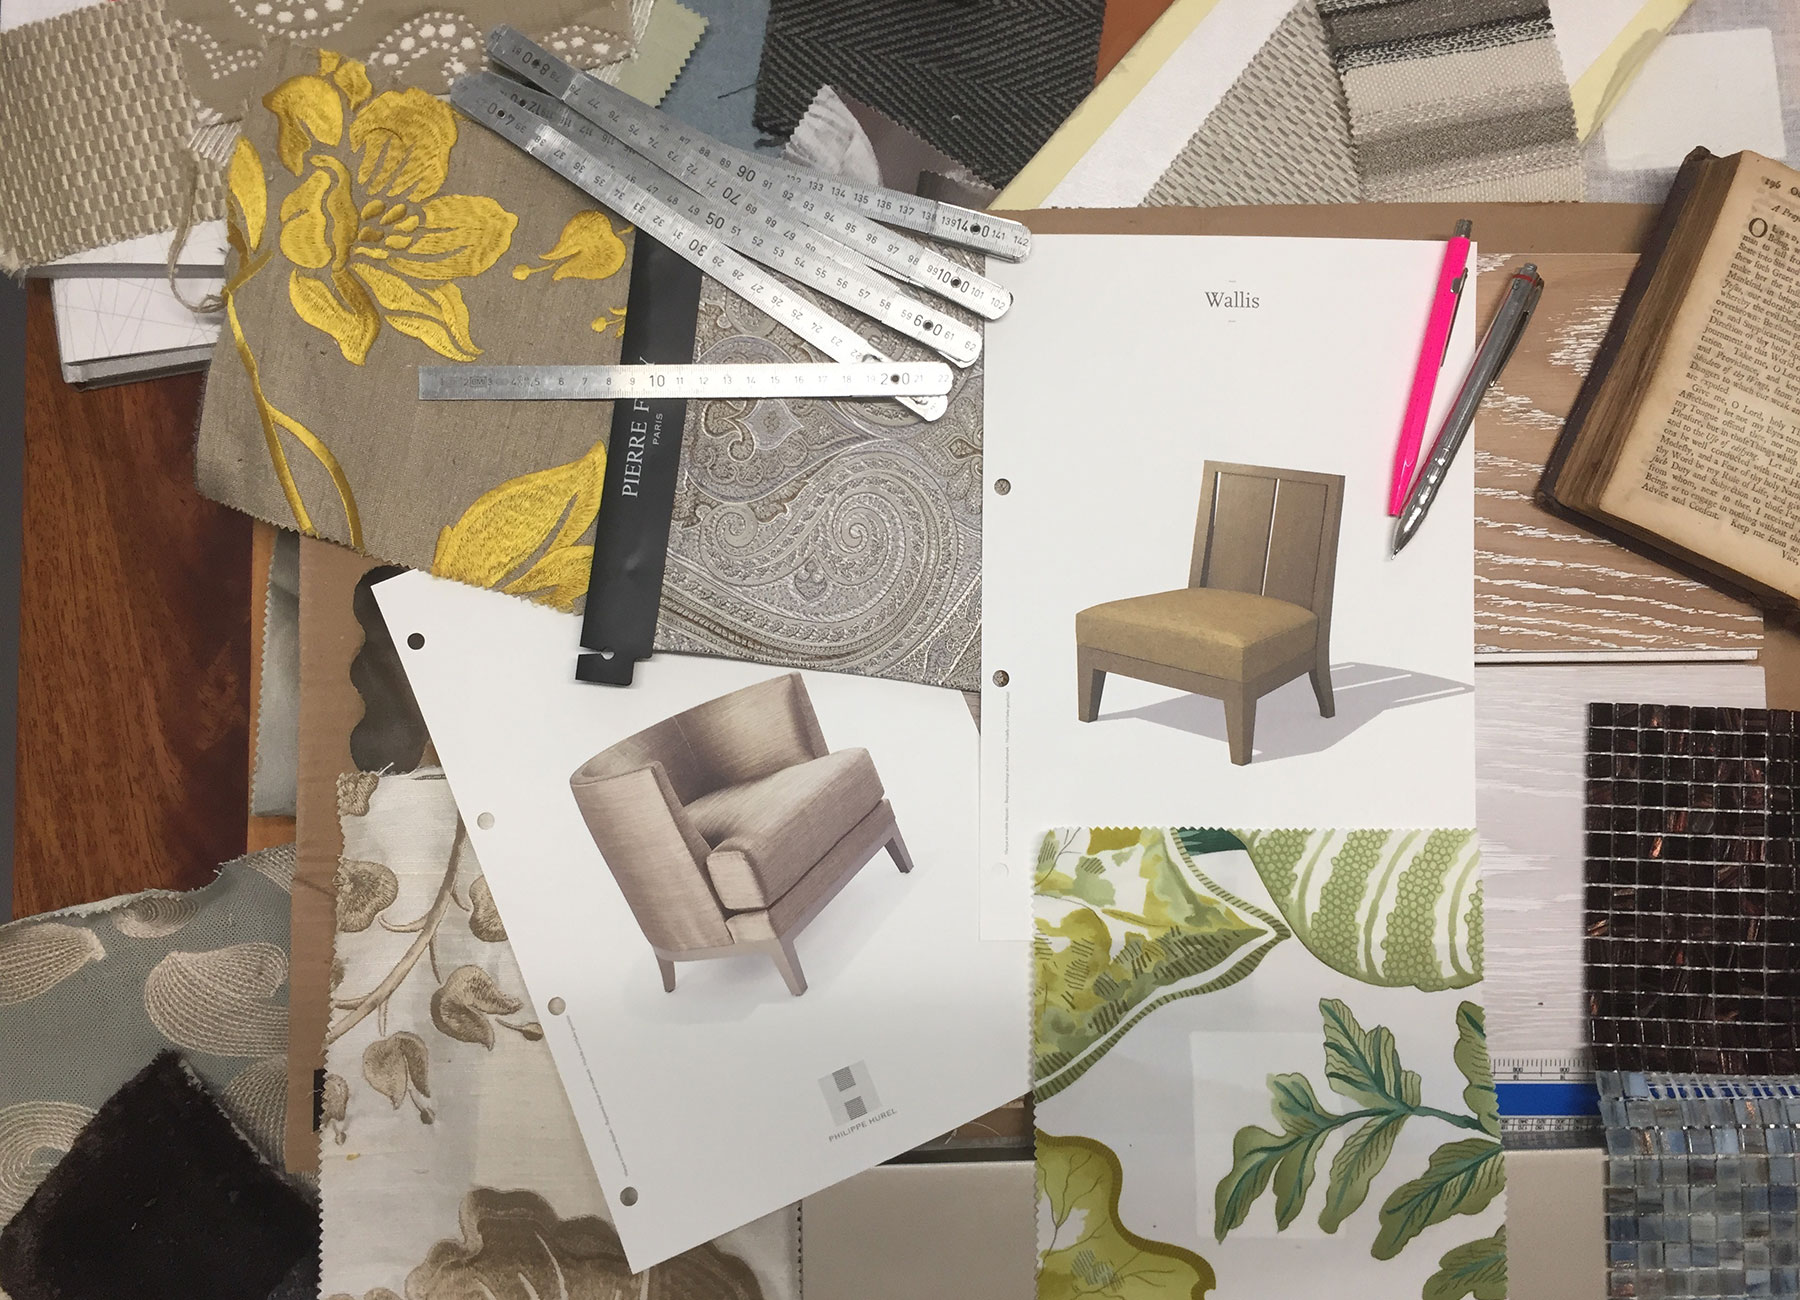 Mood board for interior design project